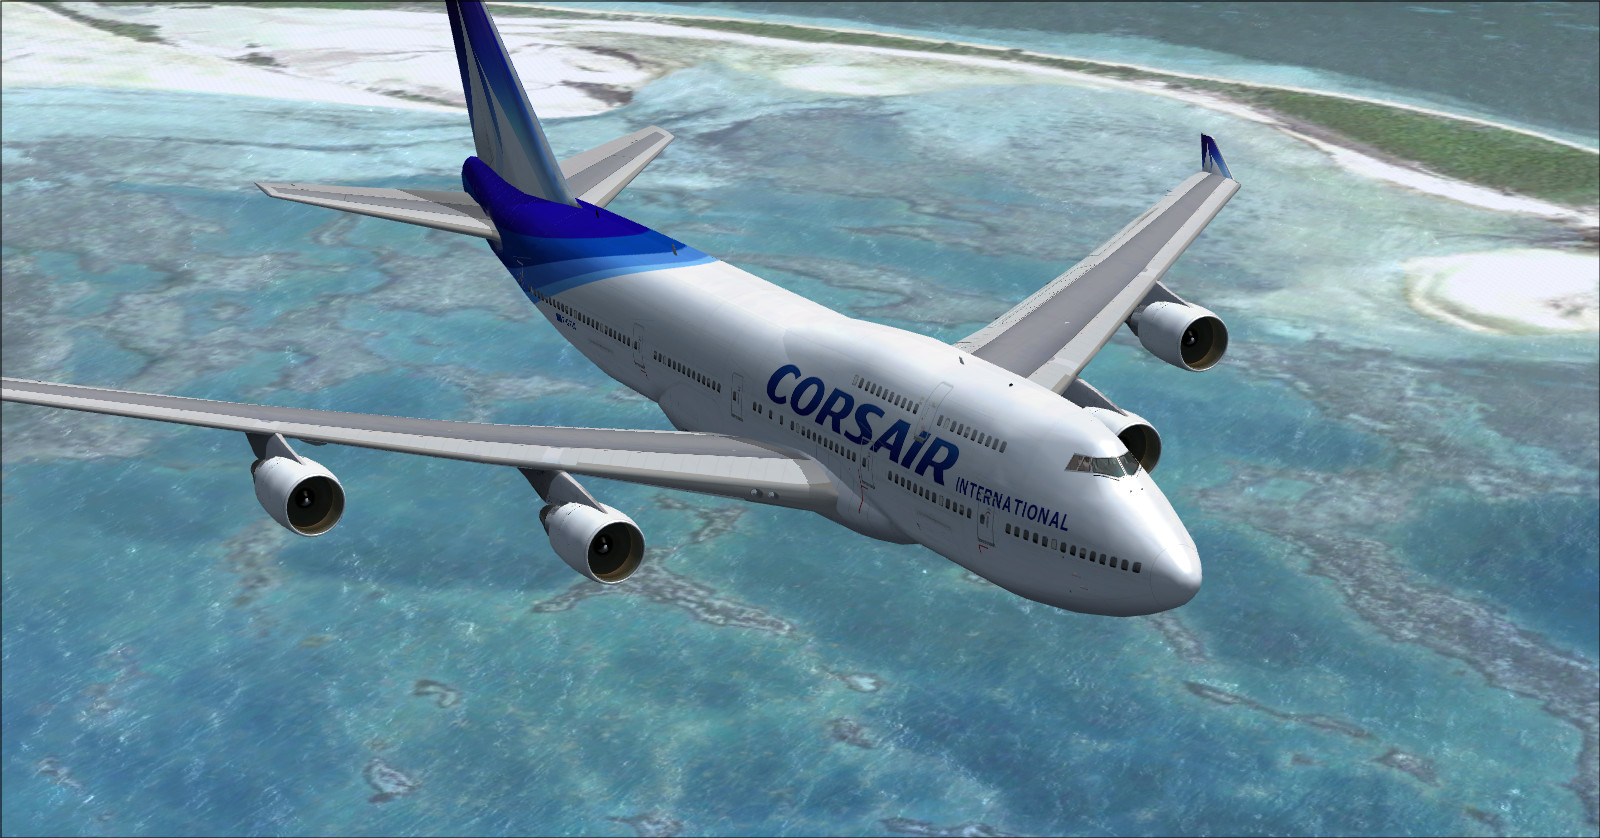 About Corsair Airline Flight Ticket Booking | FareHawker - An